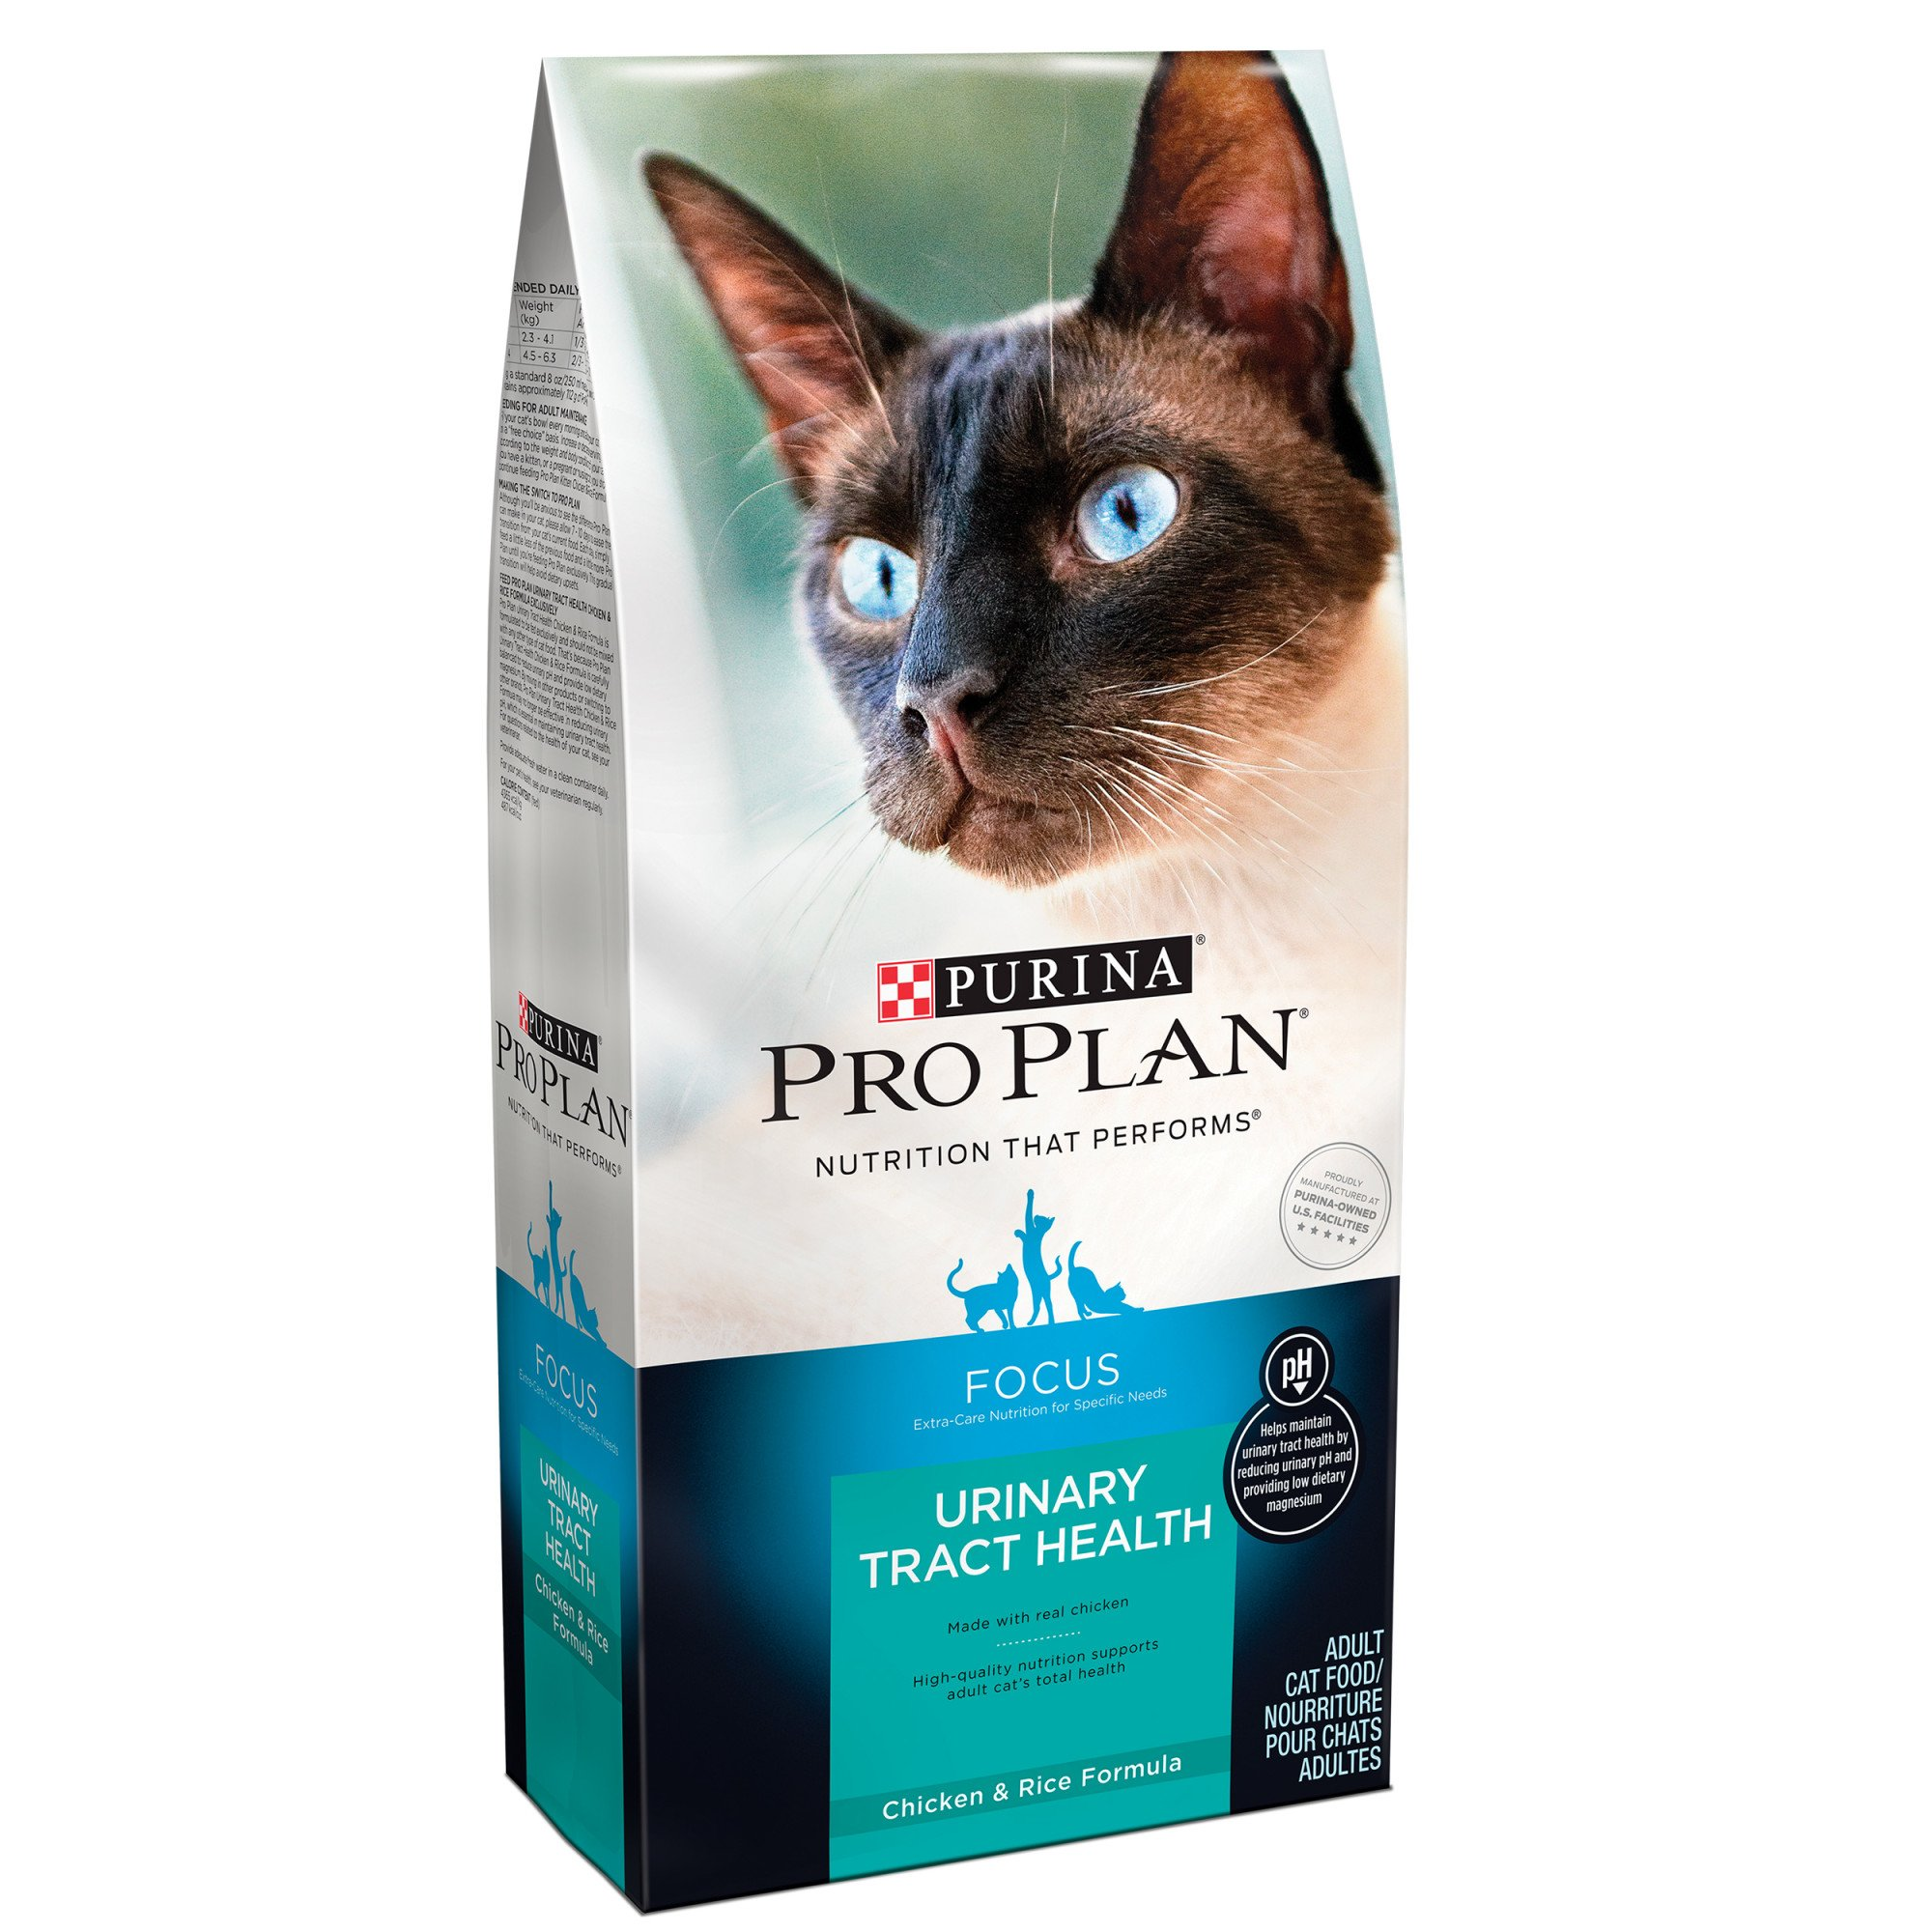 Pro Plan Focus Urinary Tract Health Cat Food